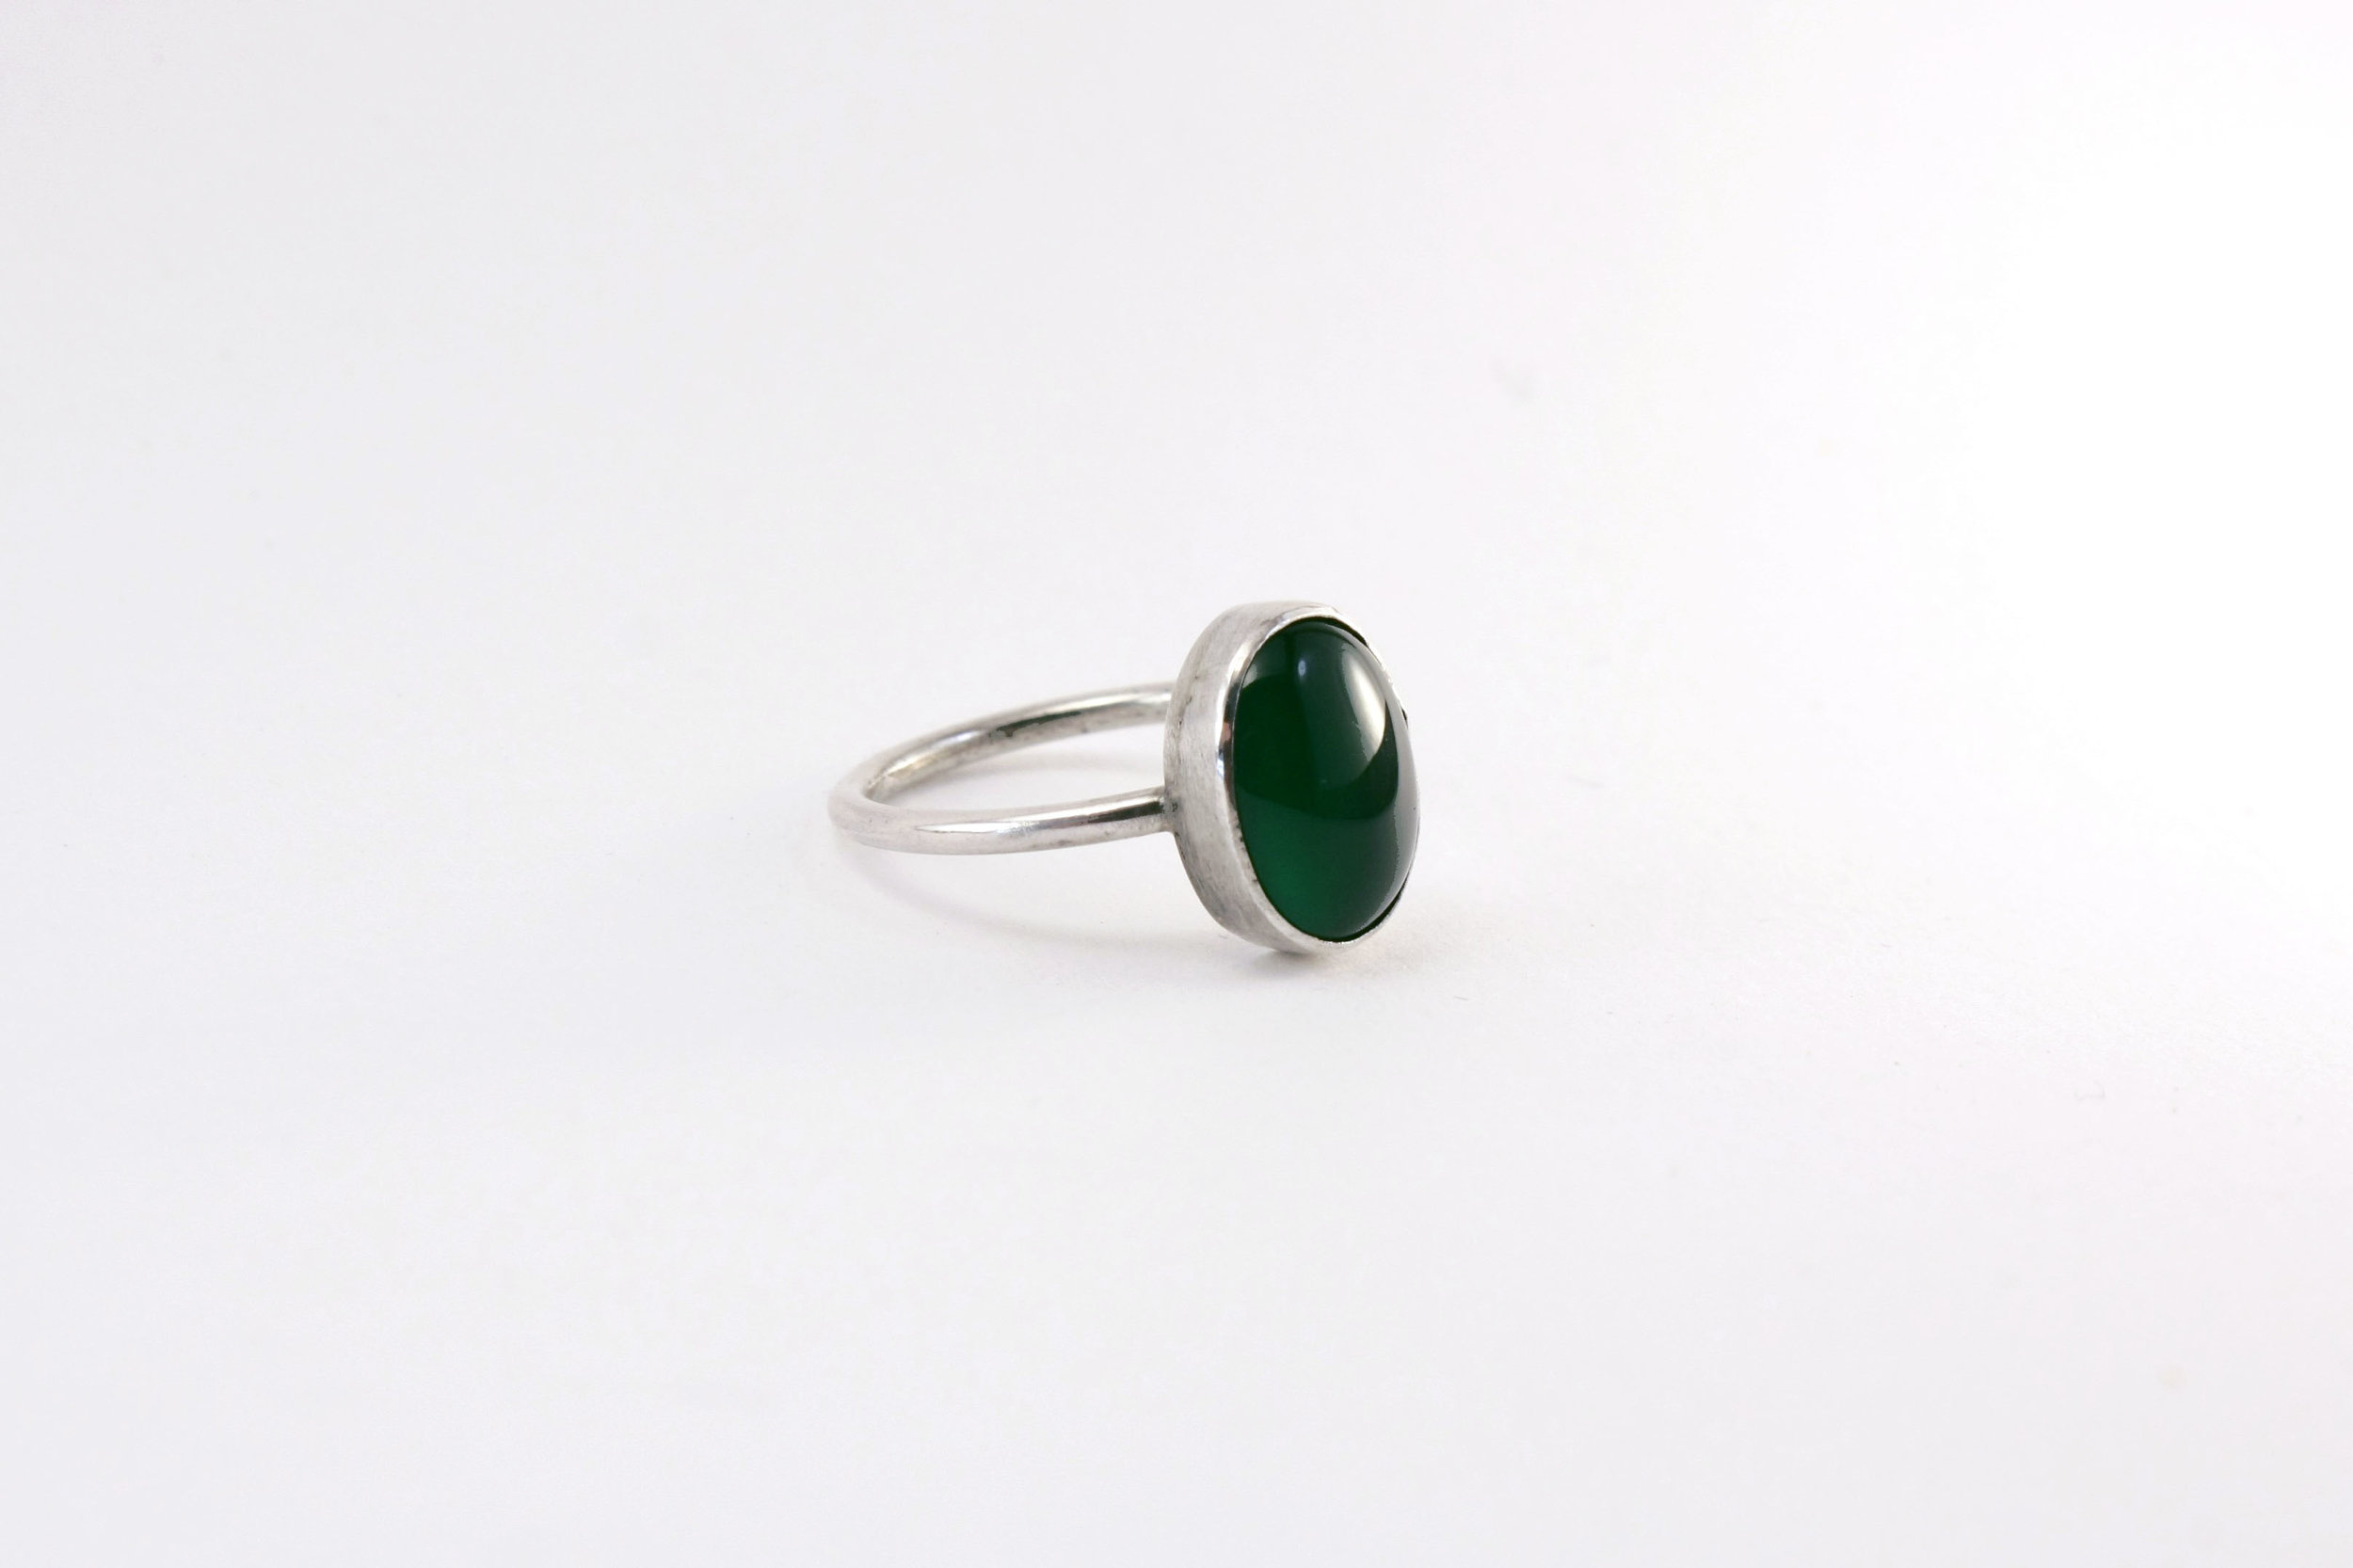 GREEN_RING_SIZE 5.5_3.jpg